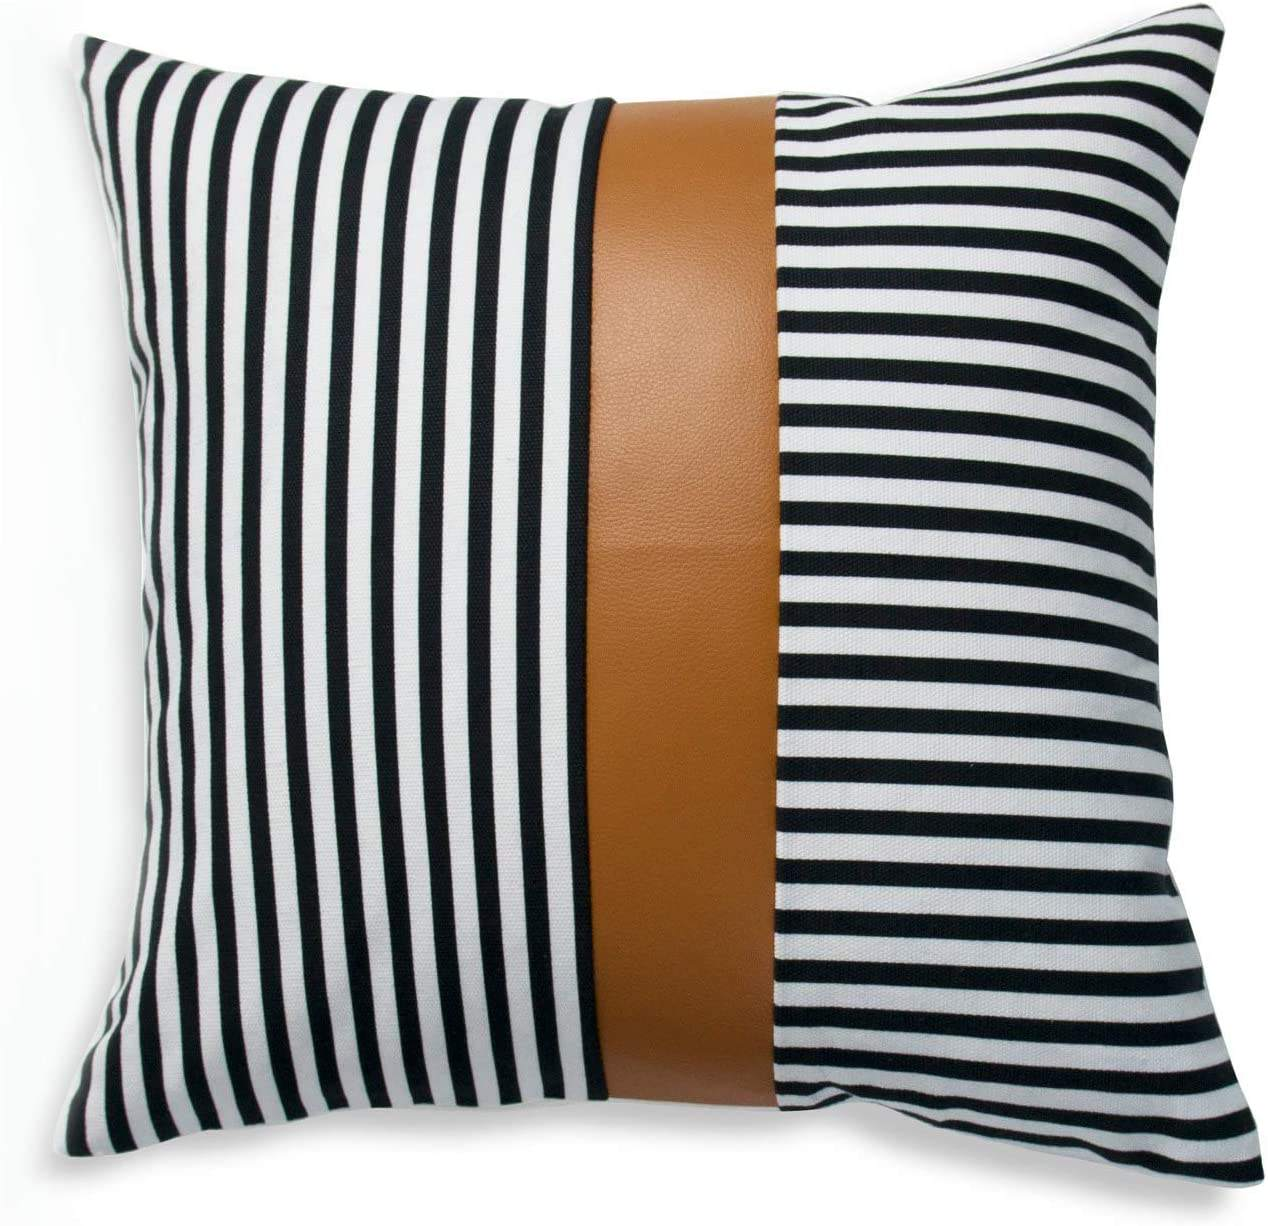 Faux Leather and 100% Cotton Pillow Cover ONLY, Camel Black Modern Design Stripes Cushion Cover for Home Decor